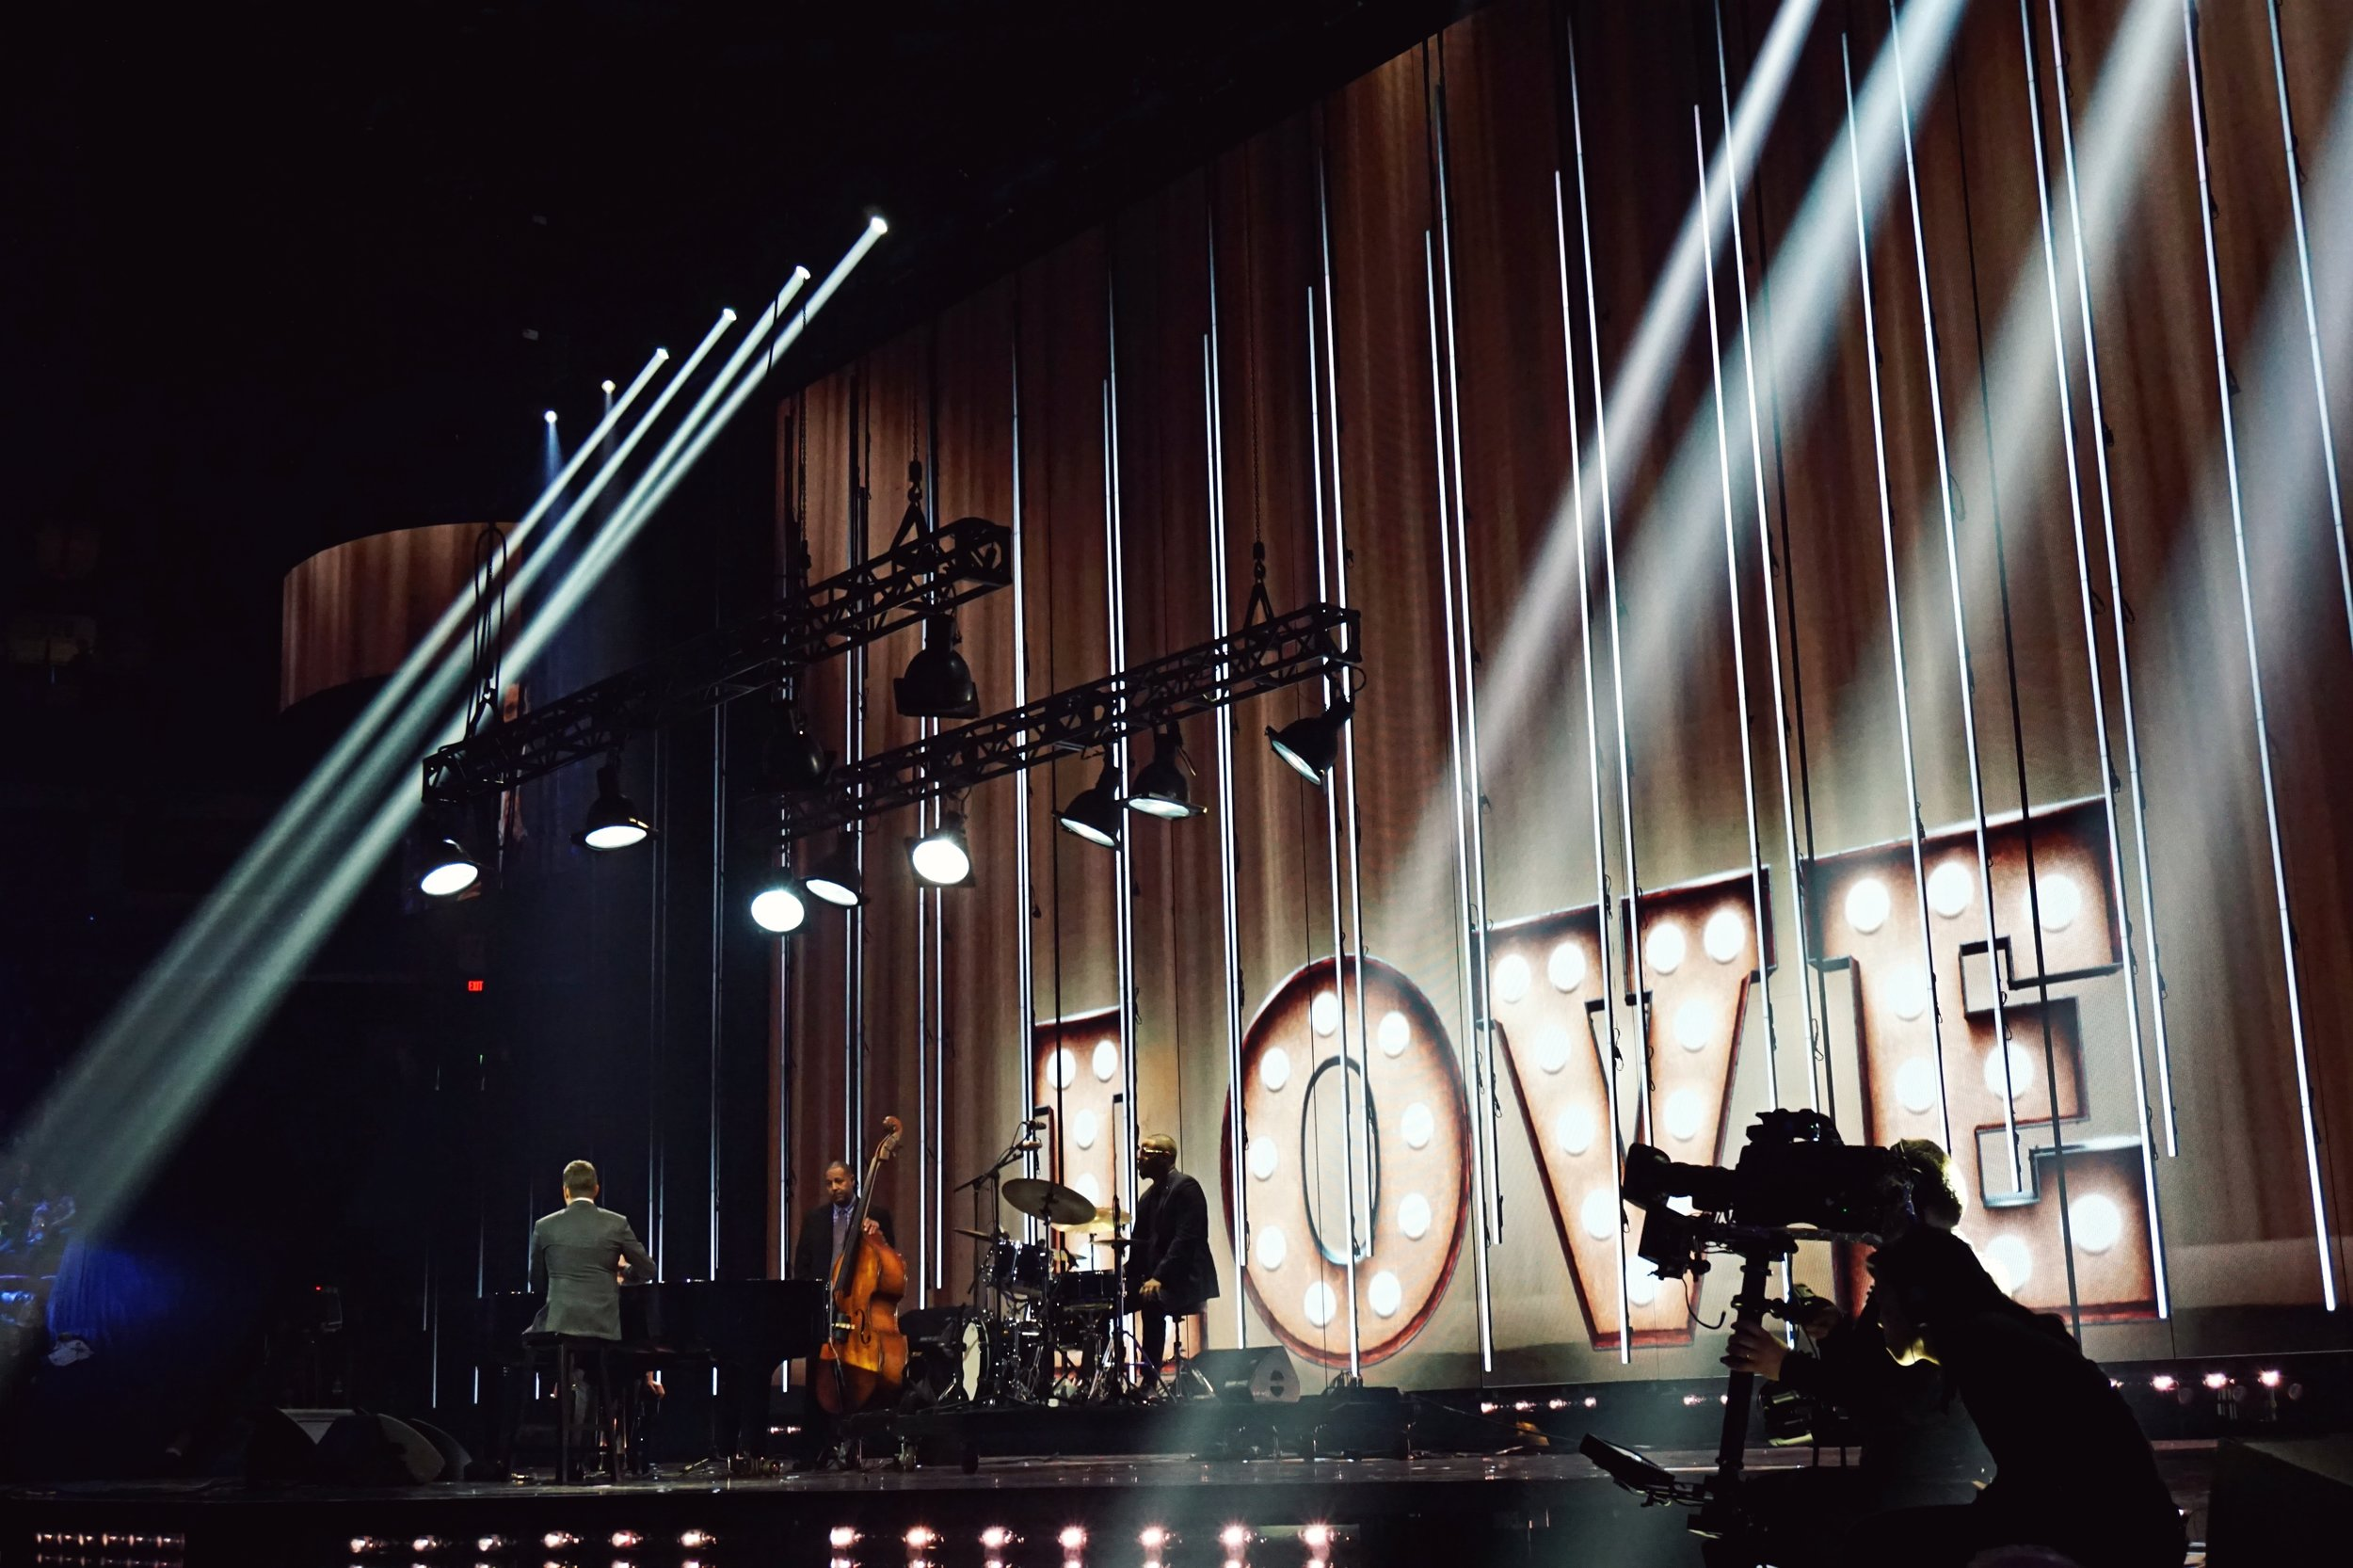 The 2018 JUNO Awards Broadcast - Sunday night was the live CBC Broadcast of The Juno Awards hosted by the one and only Michael Buble. The evening included unforgettable performances, special appearances and surprise moments with Canada's hottest artists.